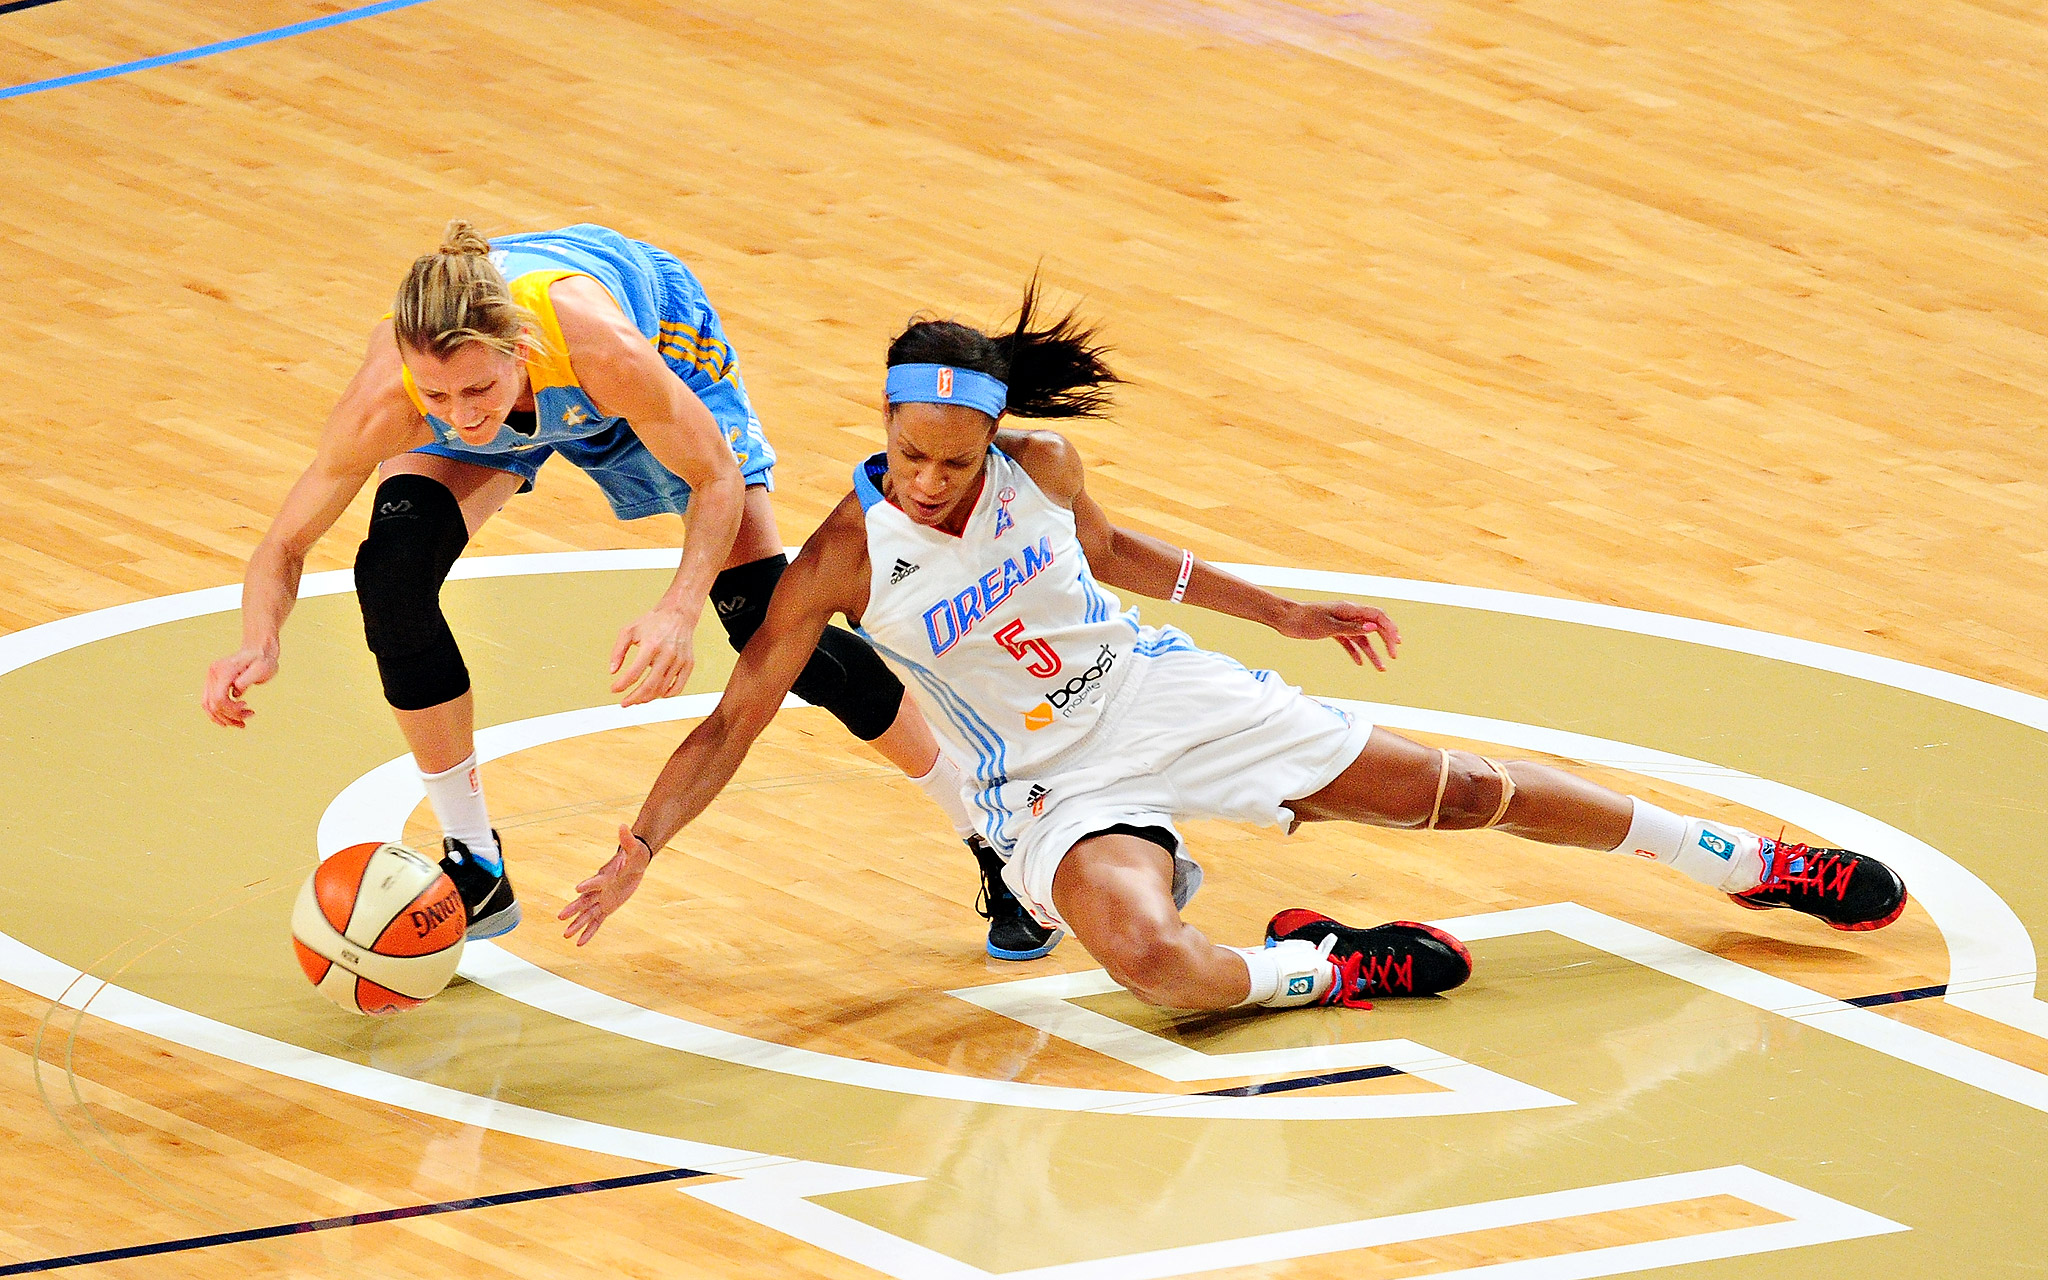 The Atlanta Dream's Jasmine Thomas battles for a loose ball against the Chicago Sky's Allie Quigley during their WNBA game at McCamish Pavilion in Atlanta.  The Sky held off the Eastern Conference-leading Dream 79-75.